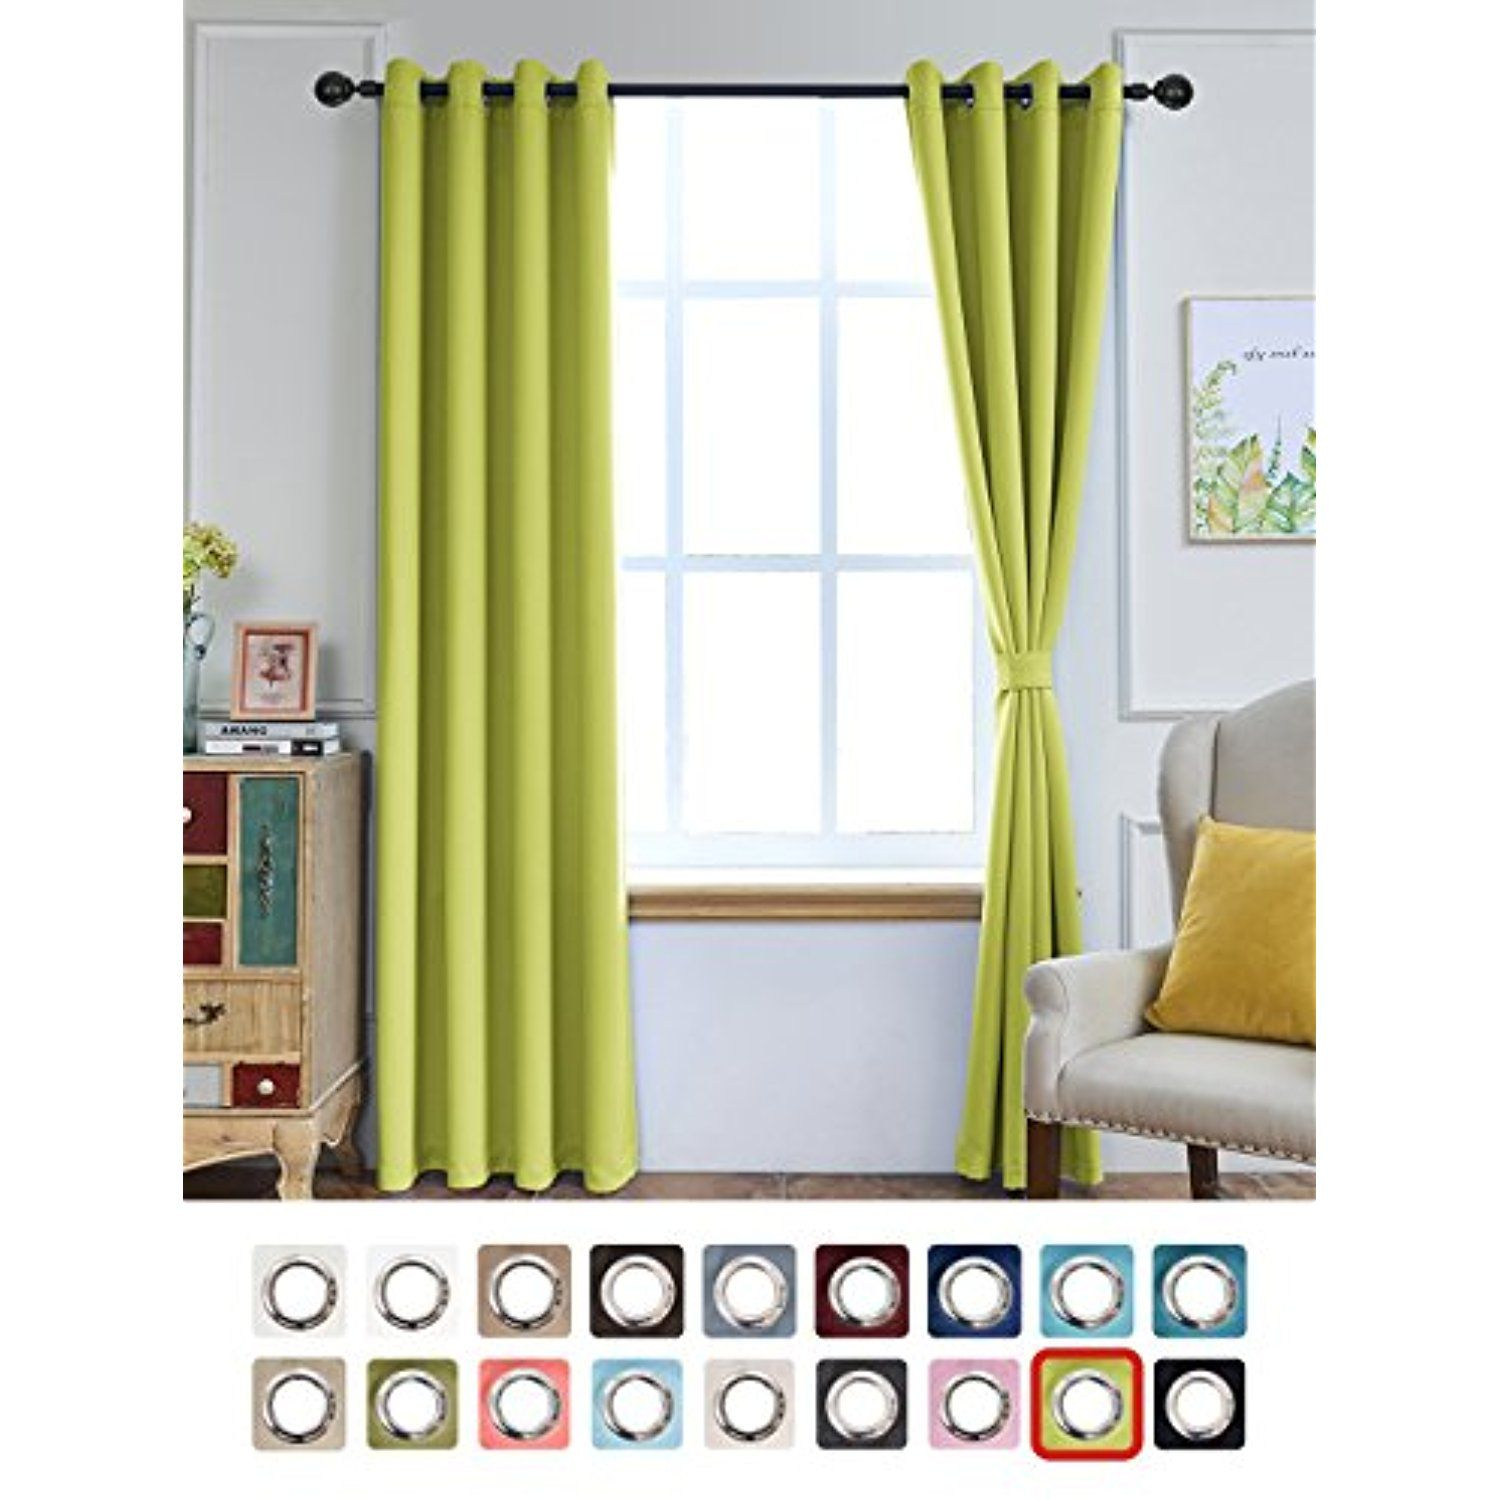 thermal photos insulated walmart unforgettable curtains size curtain concept patio shoppingdetails for full of